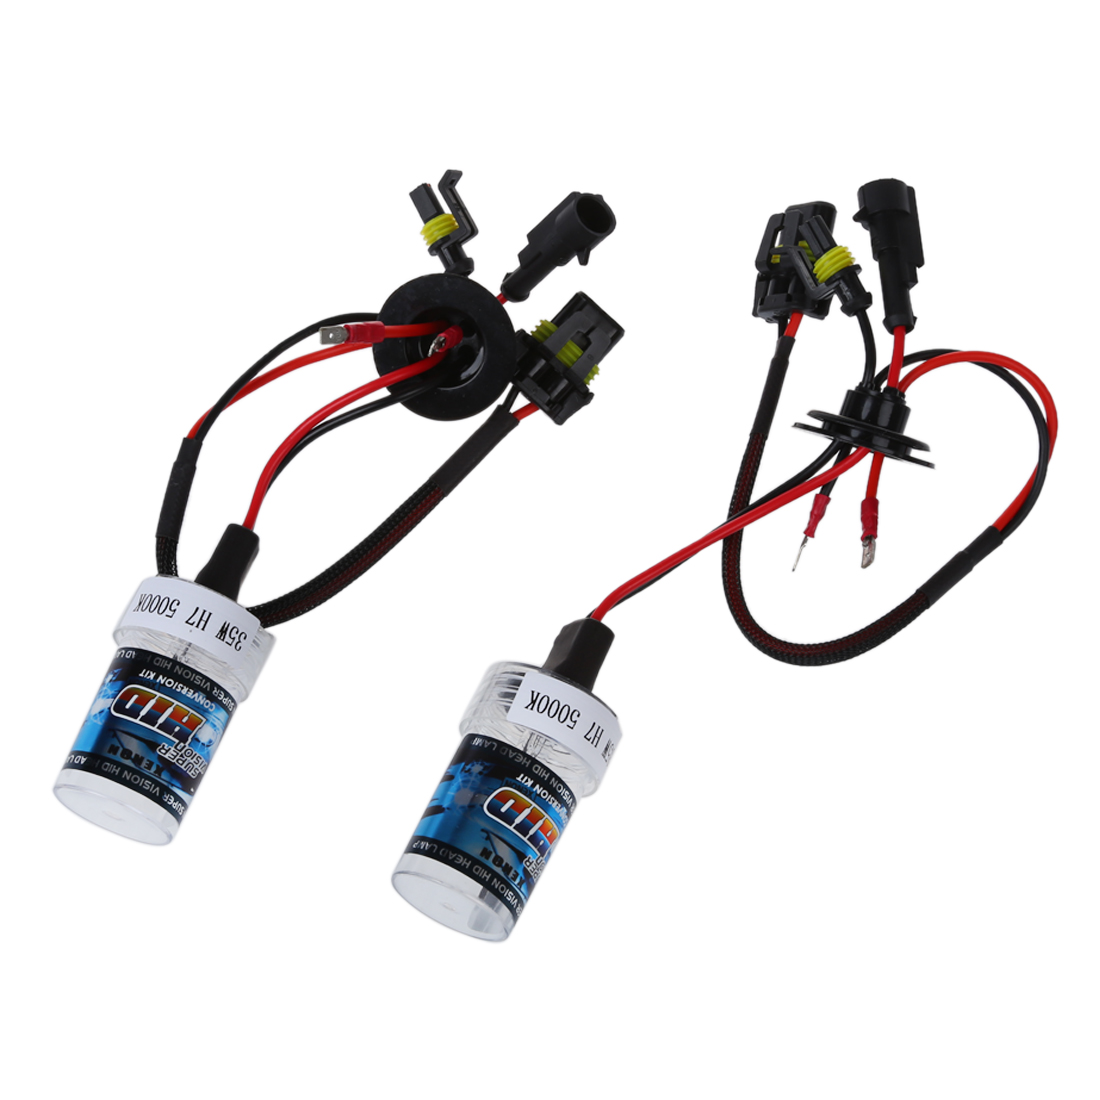 2x xenon HID Kit Car Auto Headlight Light Lamp Bulb For H7 35W DC 12V H7-5000K d1 d2 d3 d4 d1s led canbus 60w 8400lm car bulb auto lamp headlight fog light conversion kit replace halogen and xenon hid light